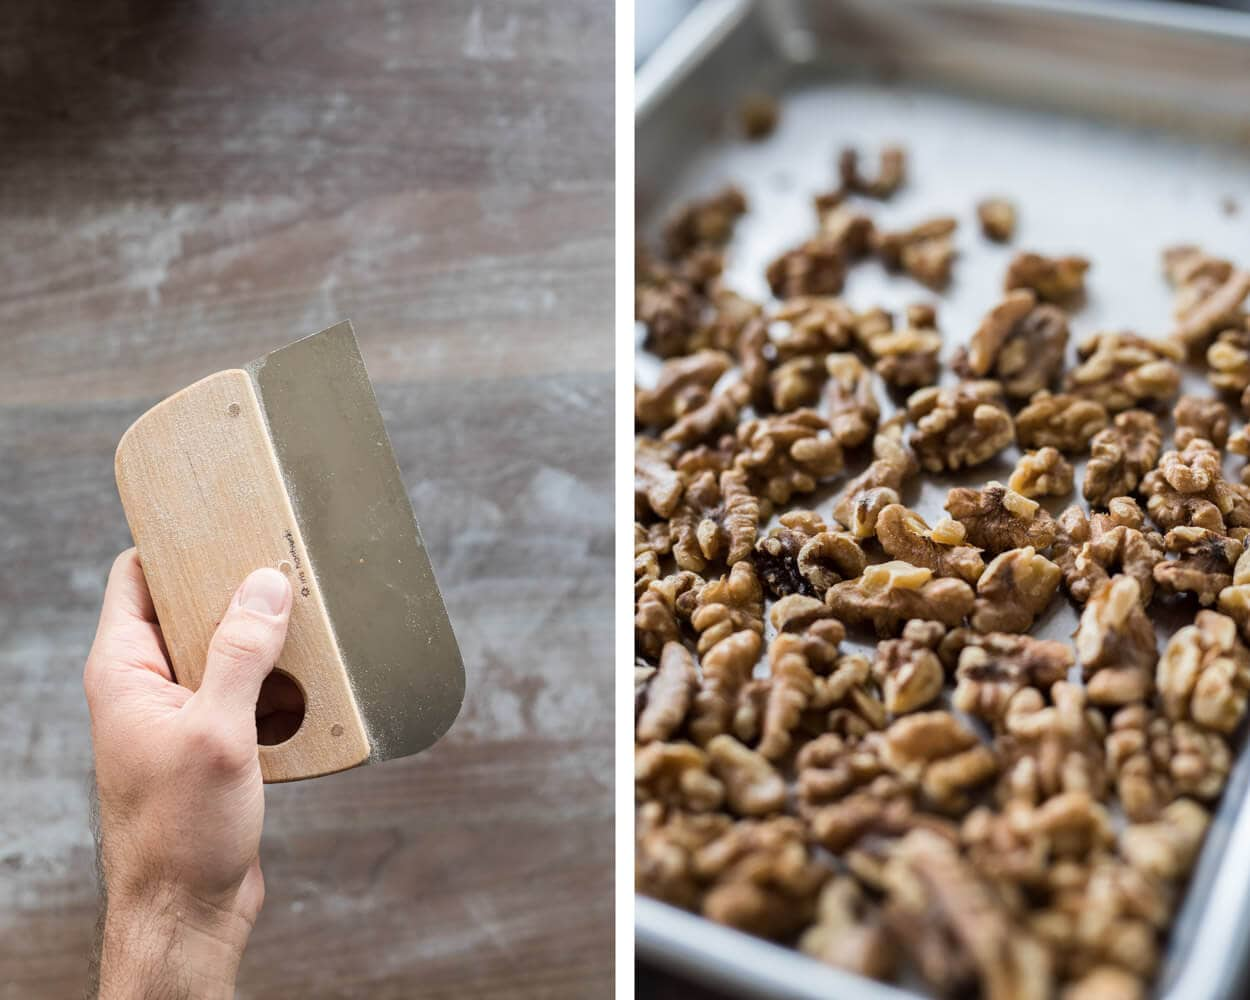 Bench scraper and toasted walnuts